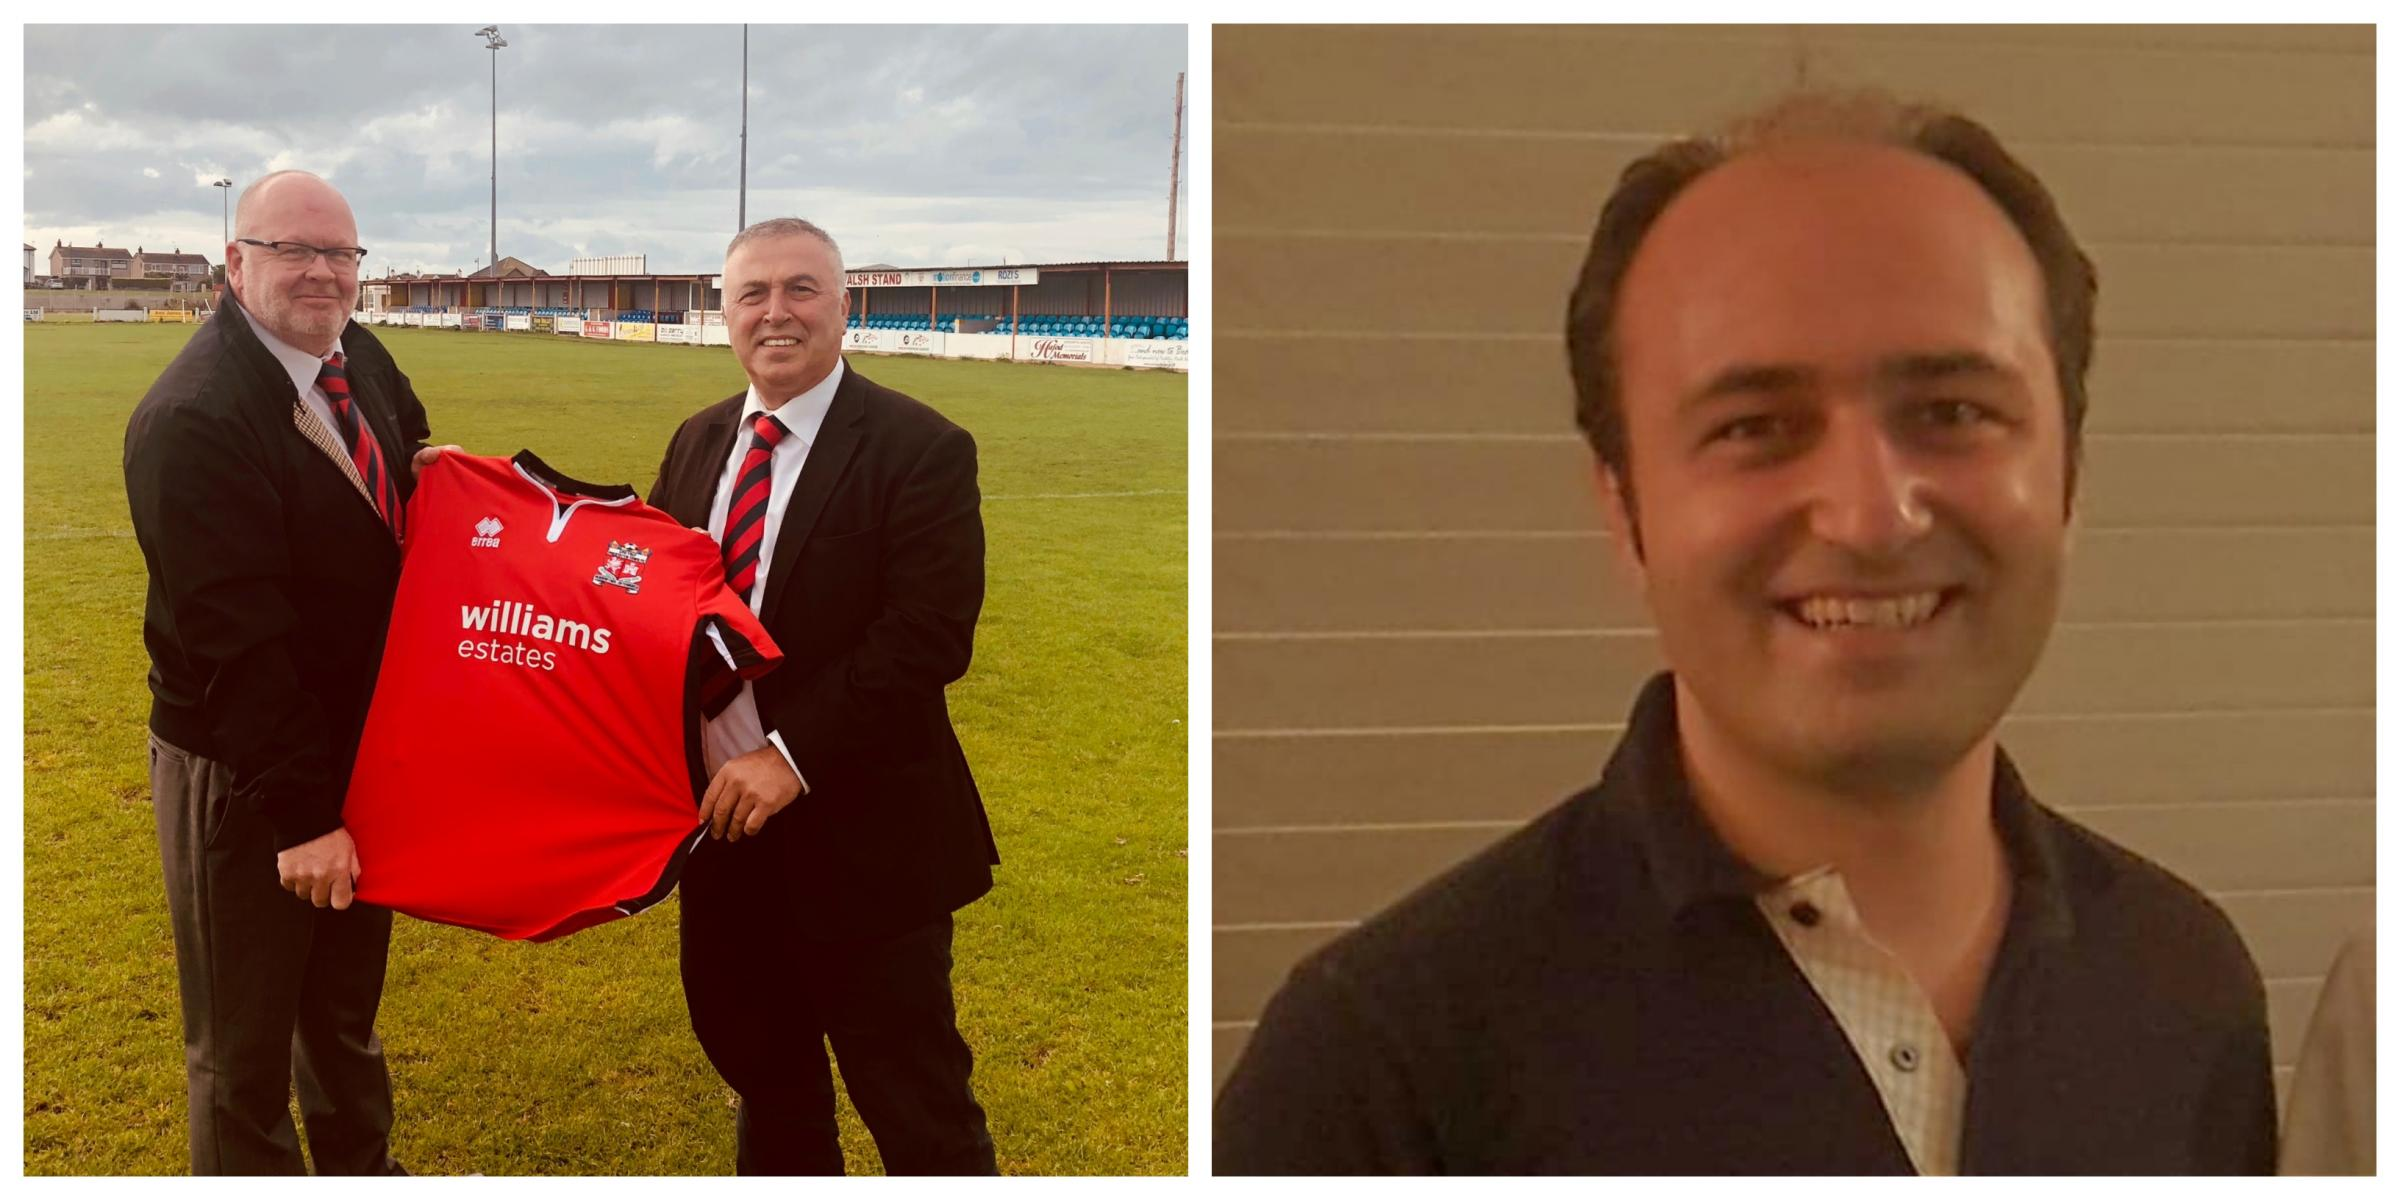 Dave Farrall, Neal and Salih Colakoglu are the new owners of Prestatyn Town